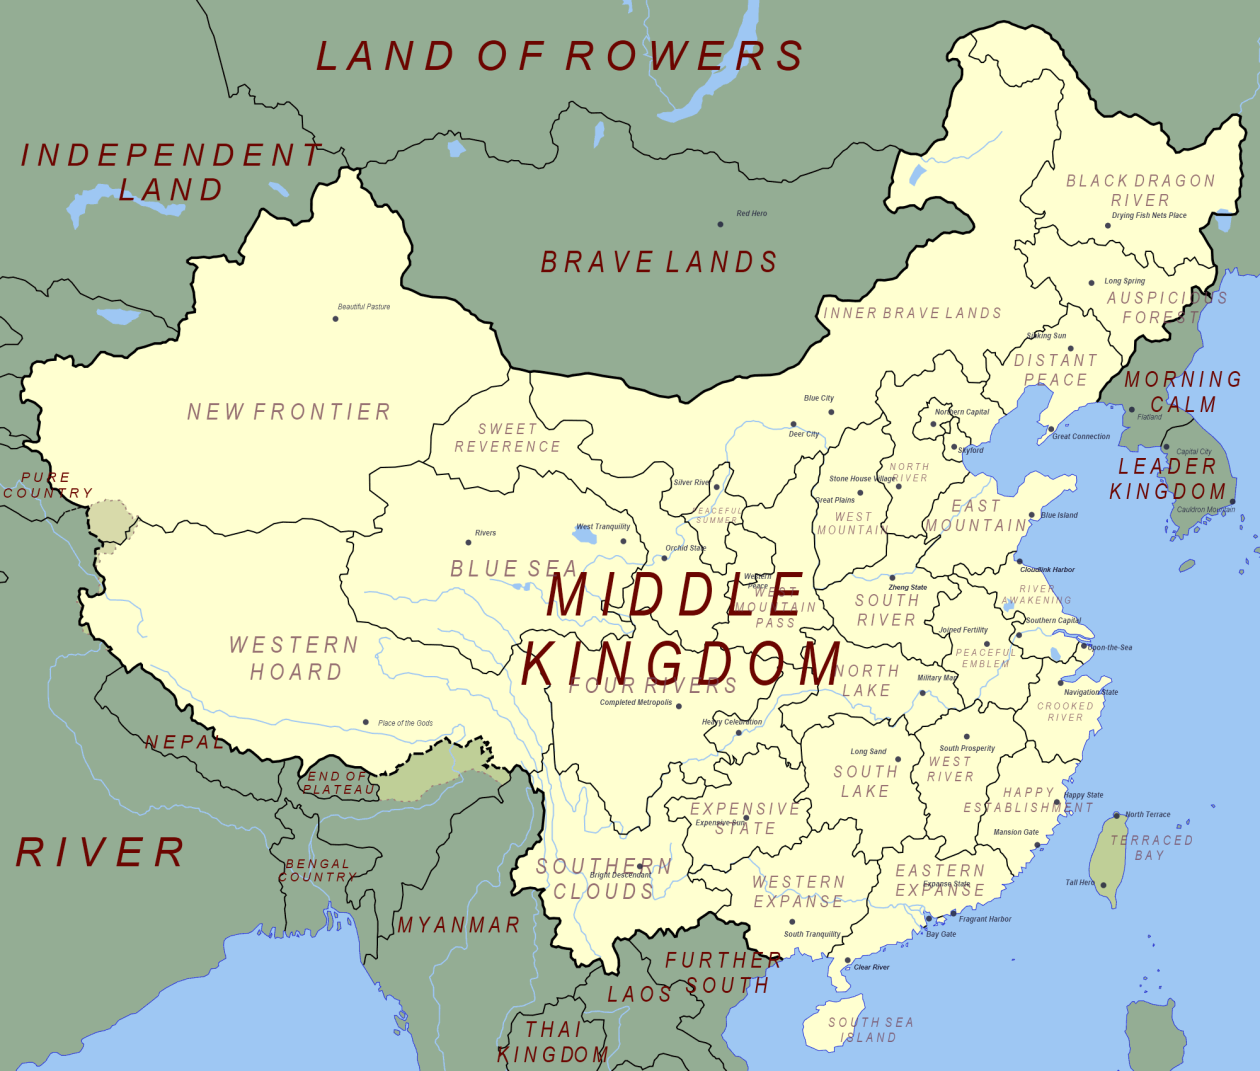 In China S Map Of The World Russia Is The Land Of Rowers And